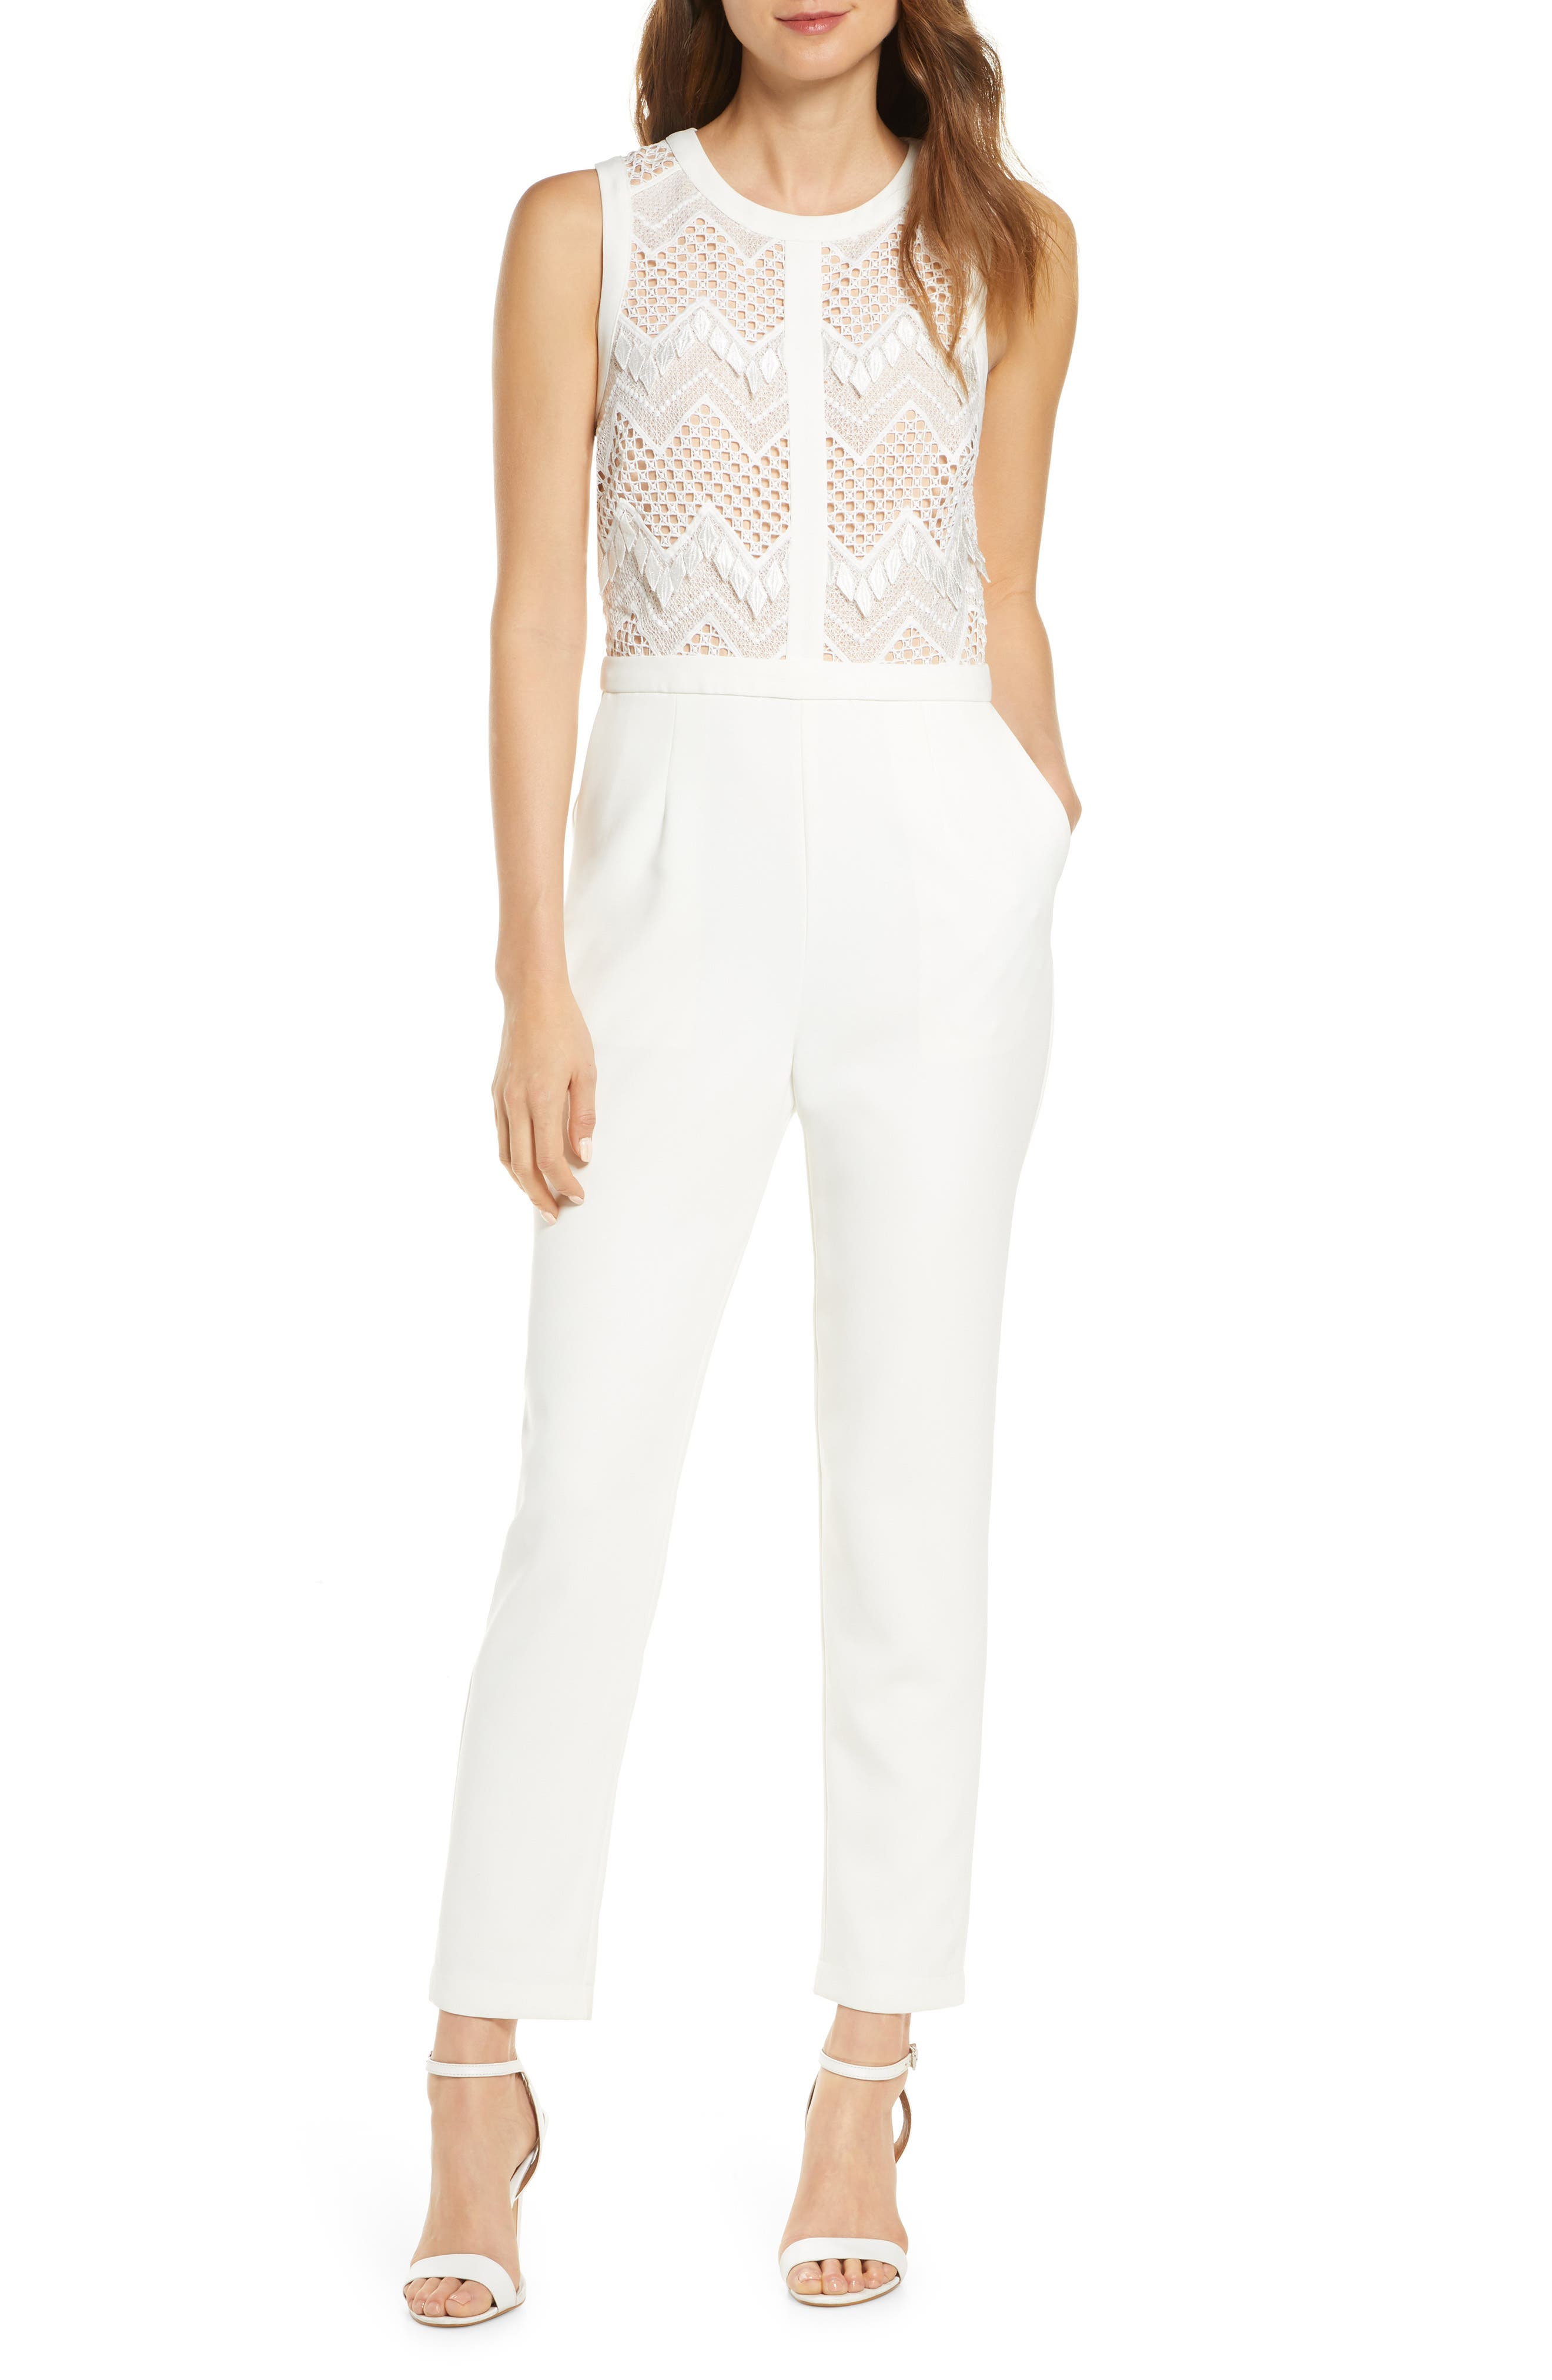 Adelyn Rae Melody Lace Jumpsuit